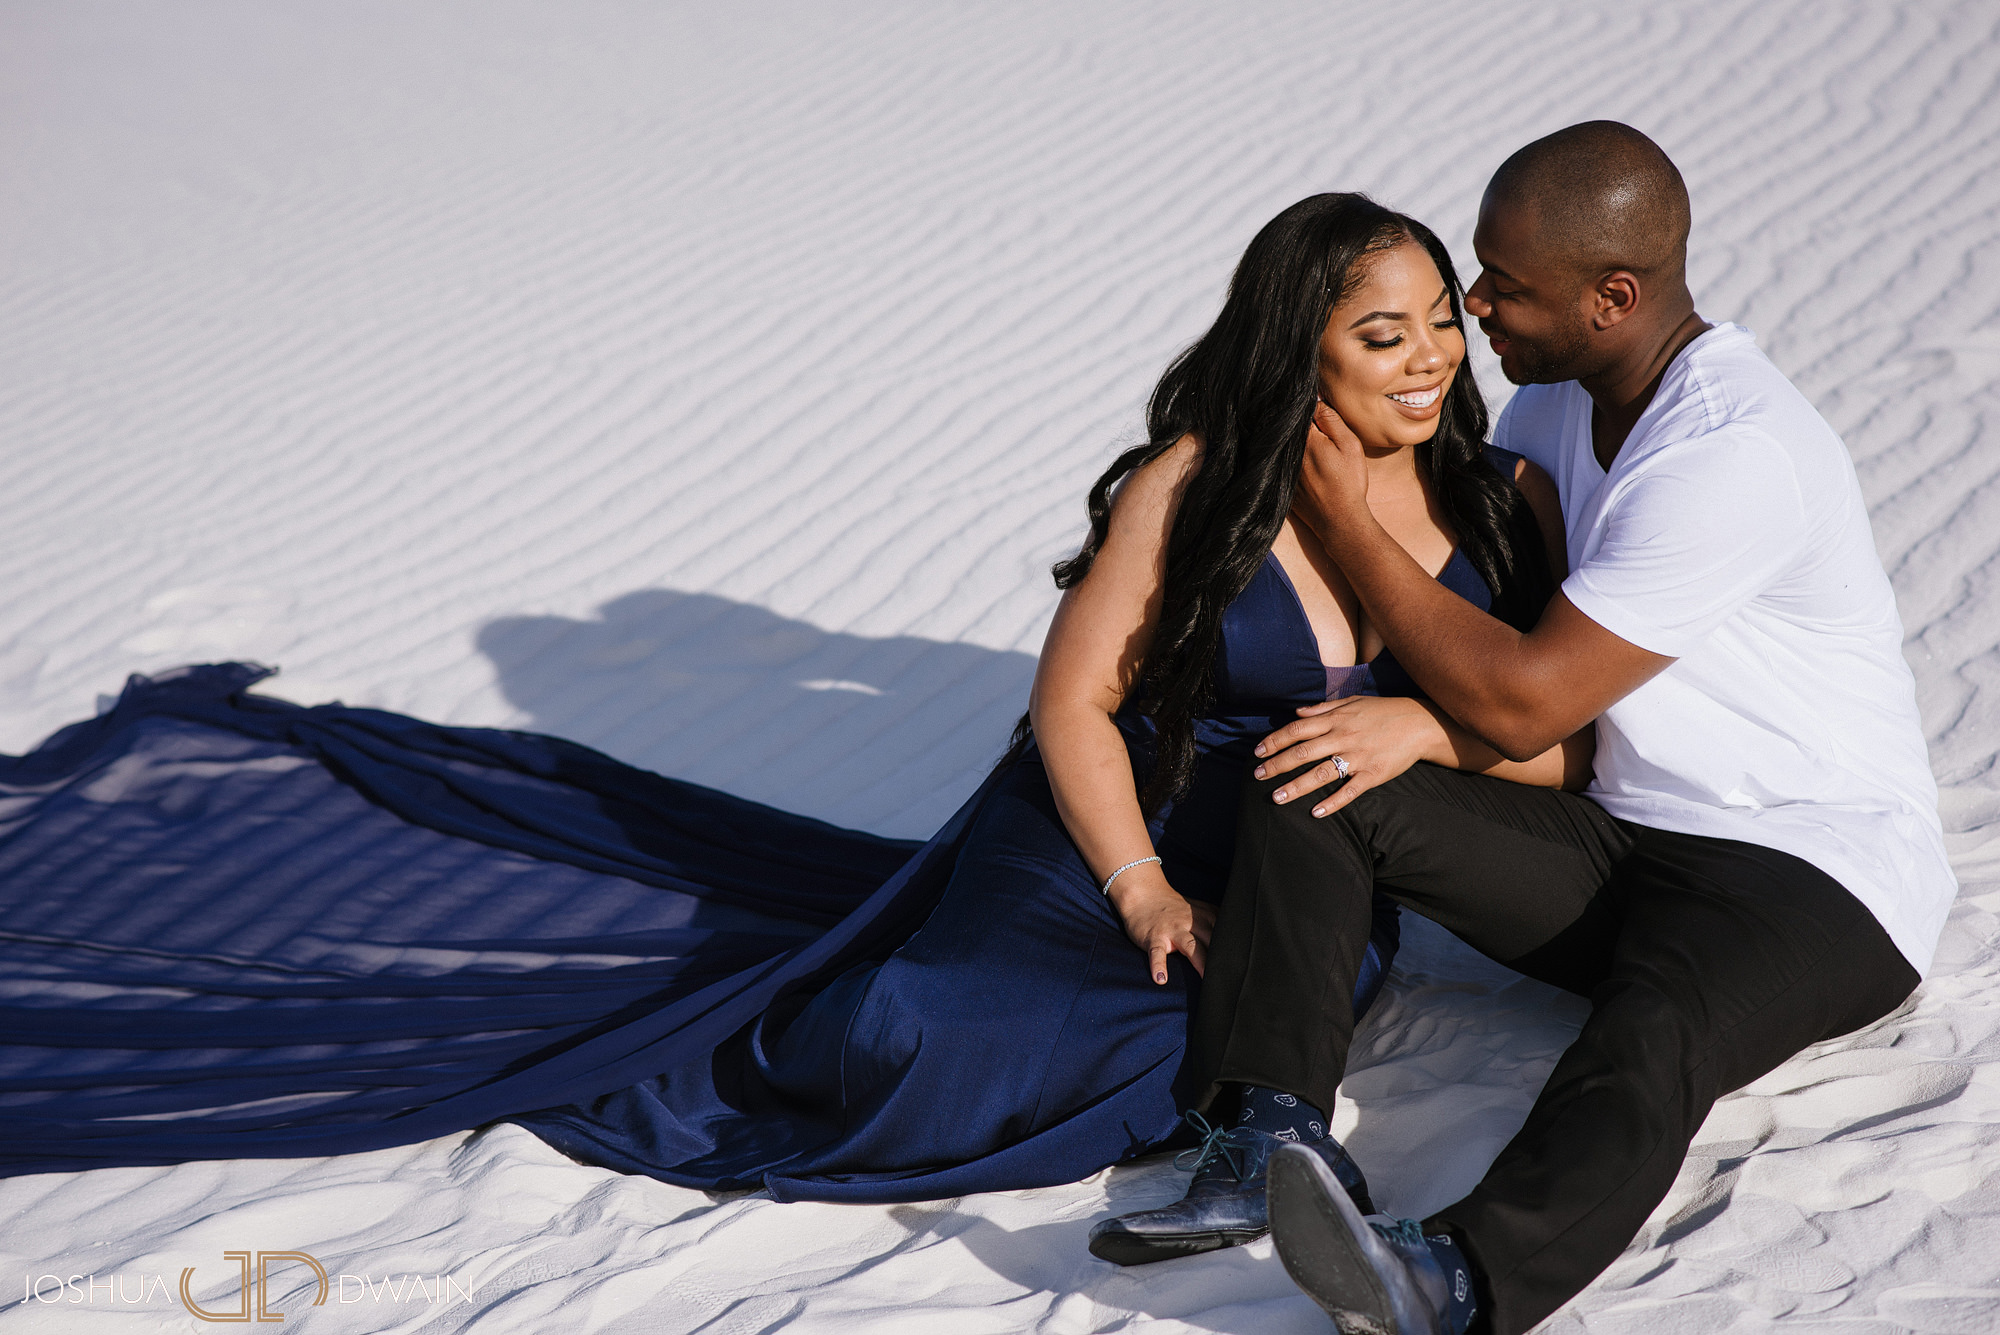 brianna-william-13-white-sands-monument-national-park-new-mexico-engagement-photographer-joshua-dwain-